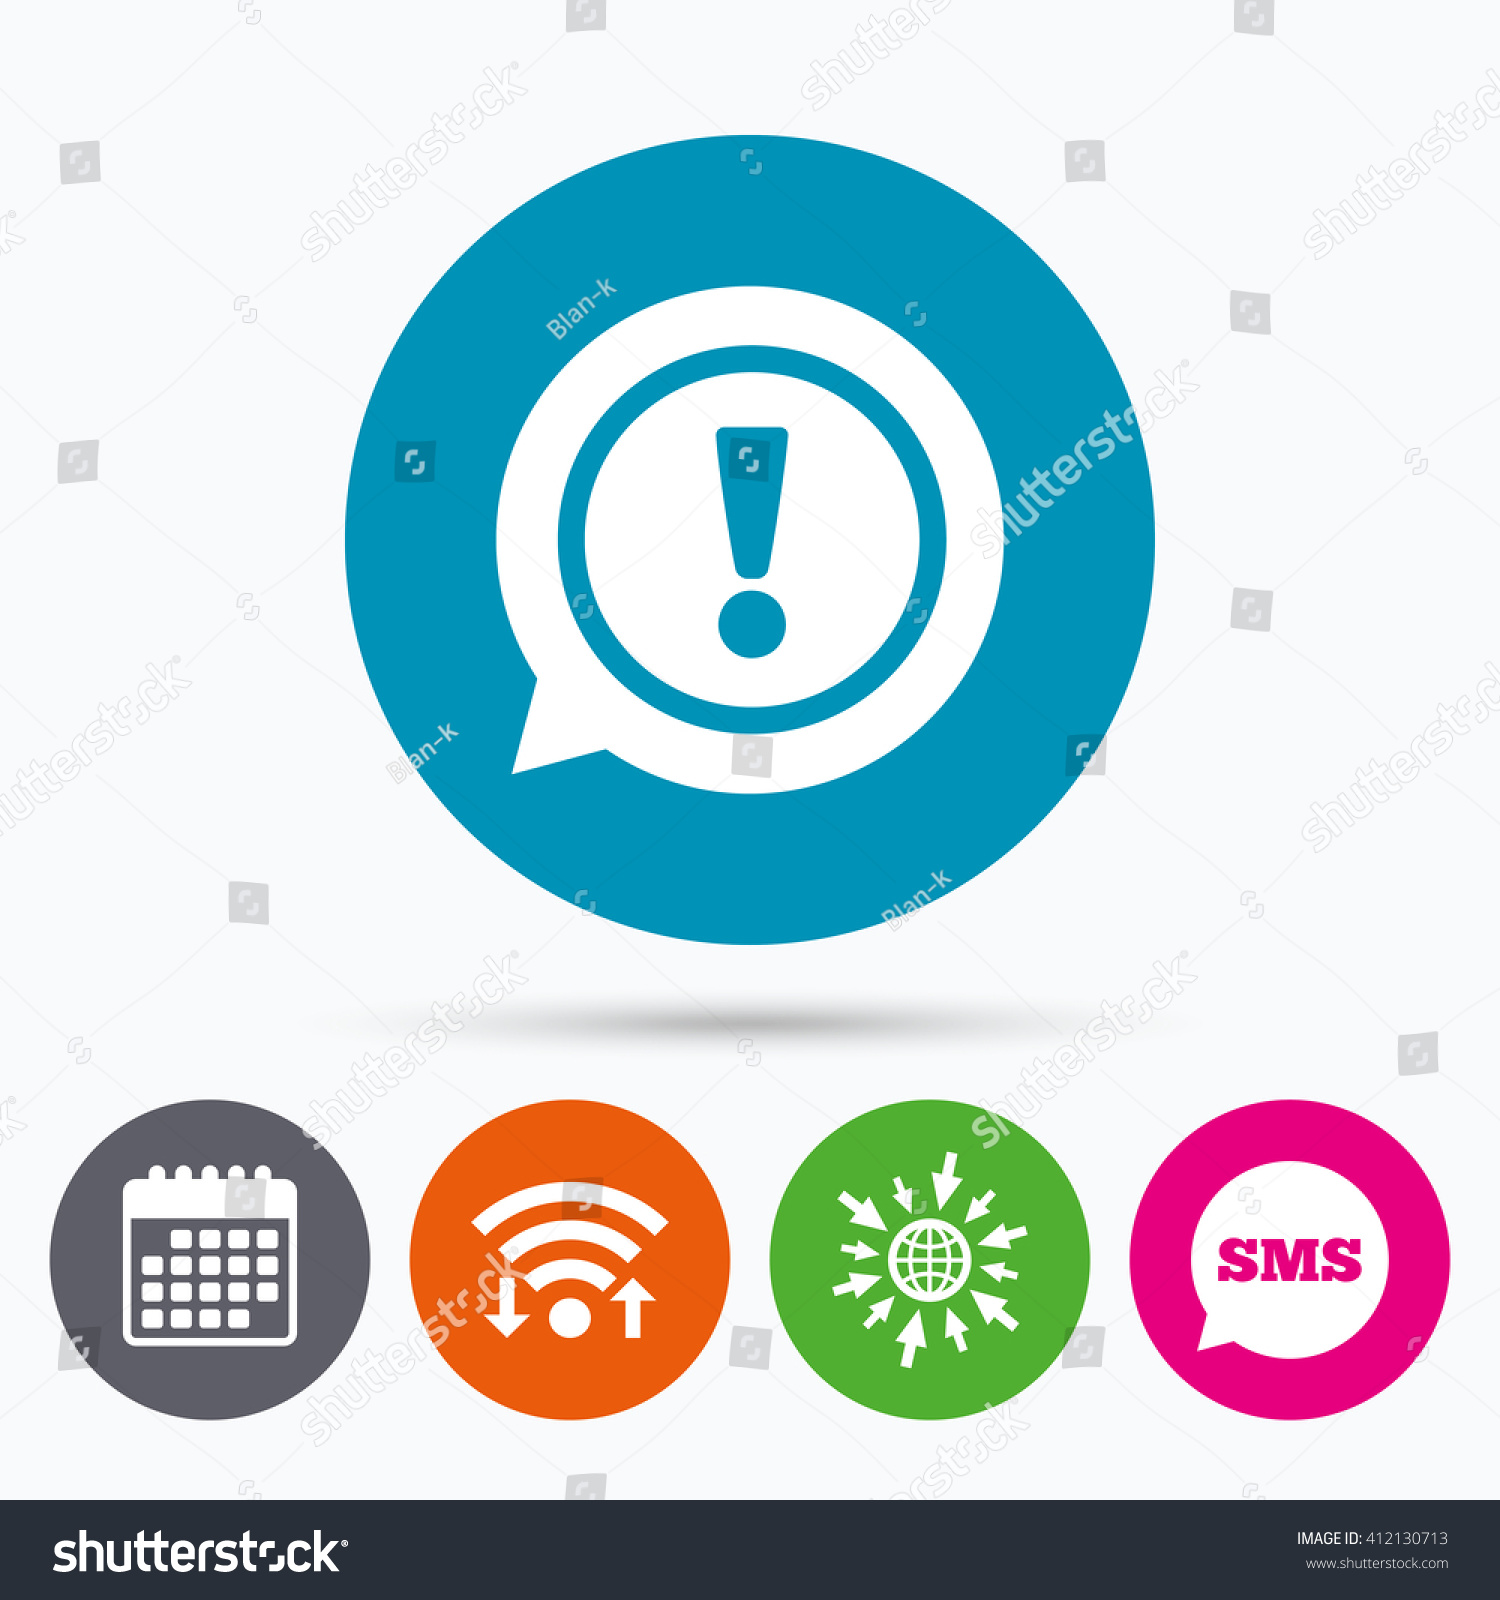 Wifi sms calendar icons exclamation mark stock vector 412130713 wifi sms and calendar icons exclamation mark sign icon attention speech bubble symbol biocorpaavc